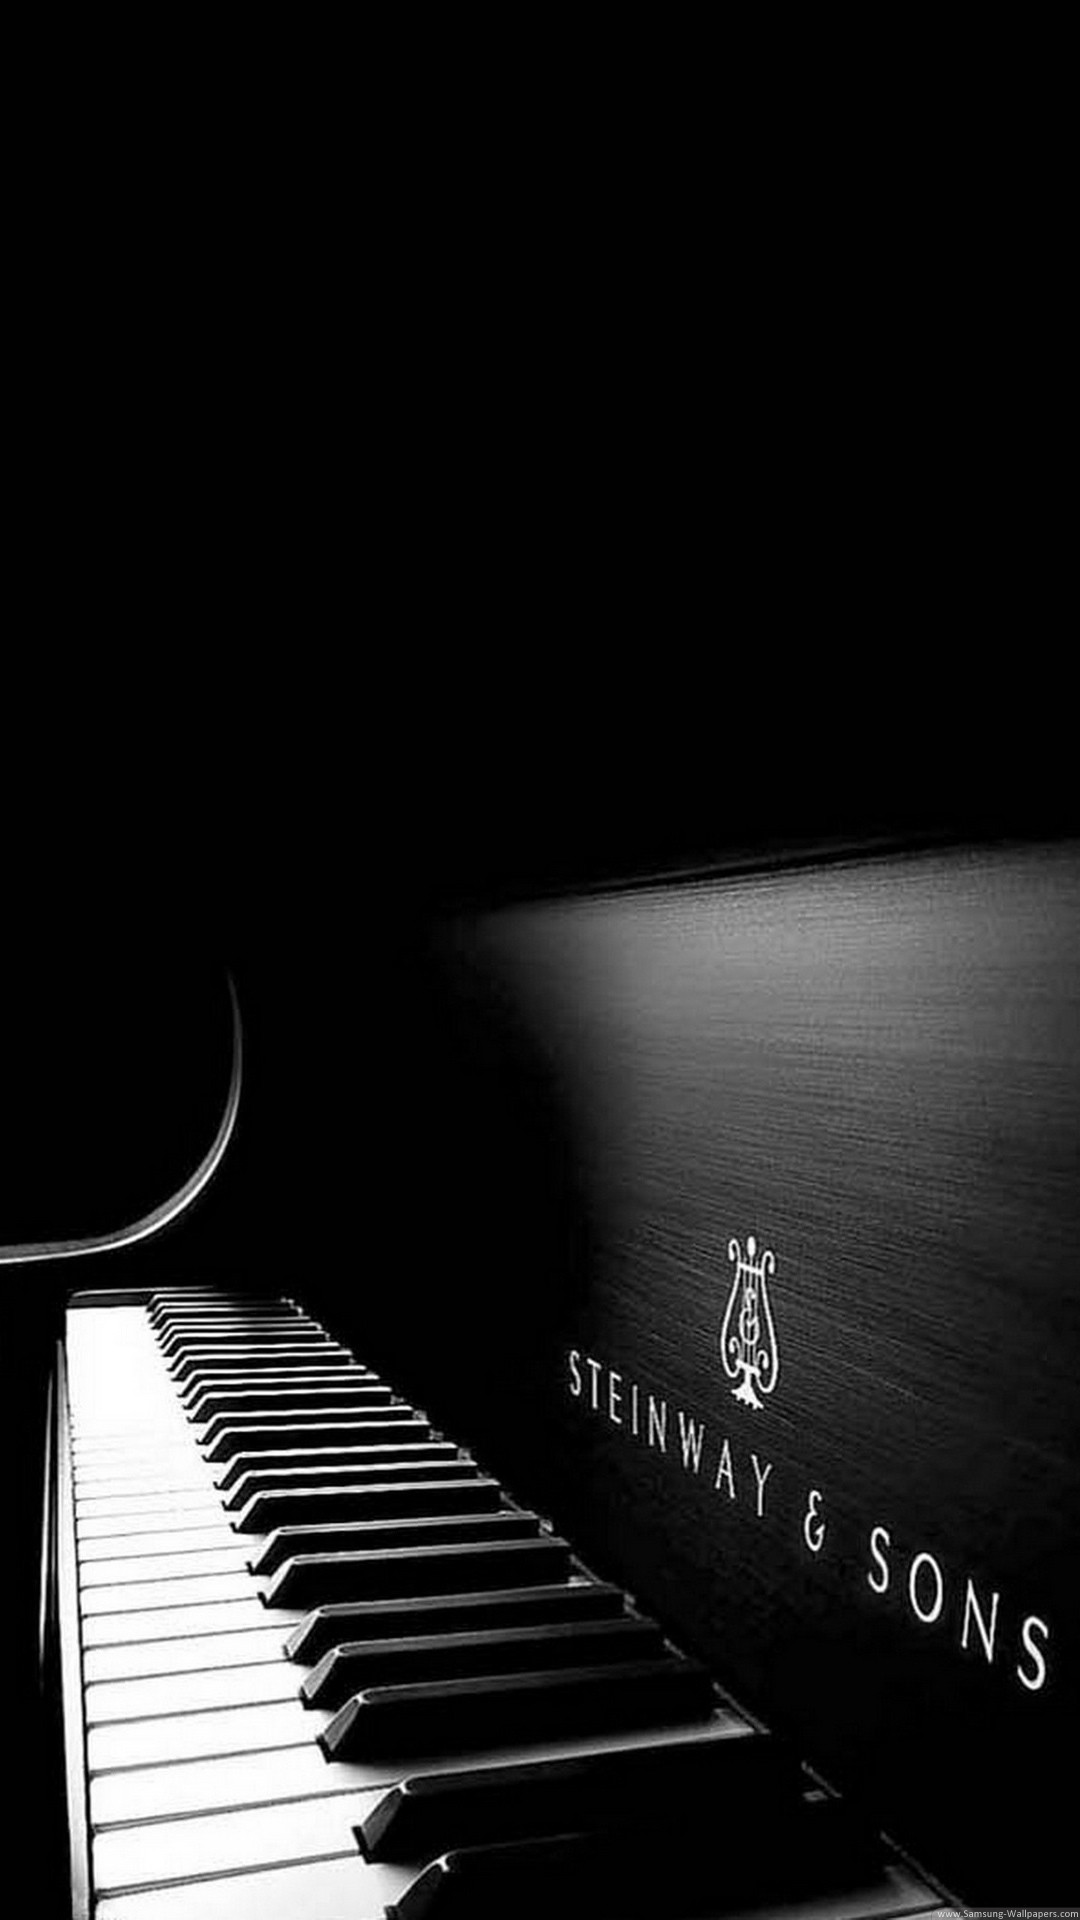 Steinway And Sons Black Piano iPhone 7 Plus HD Wallpaper